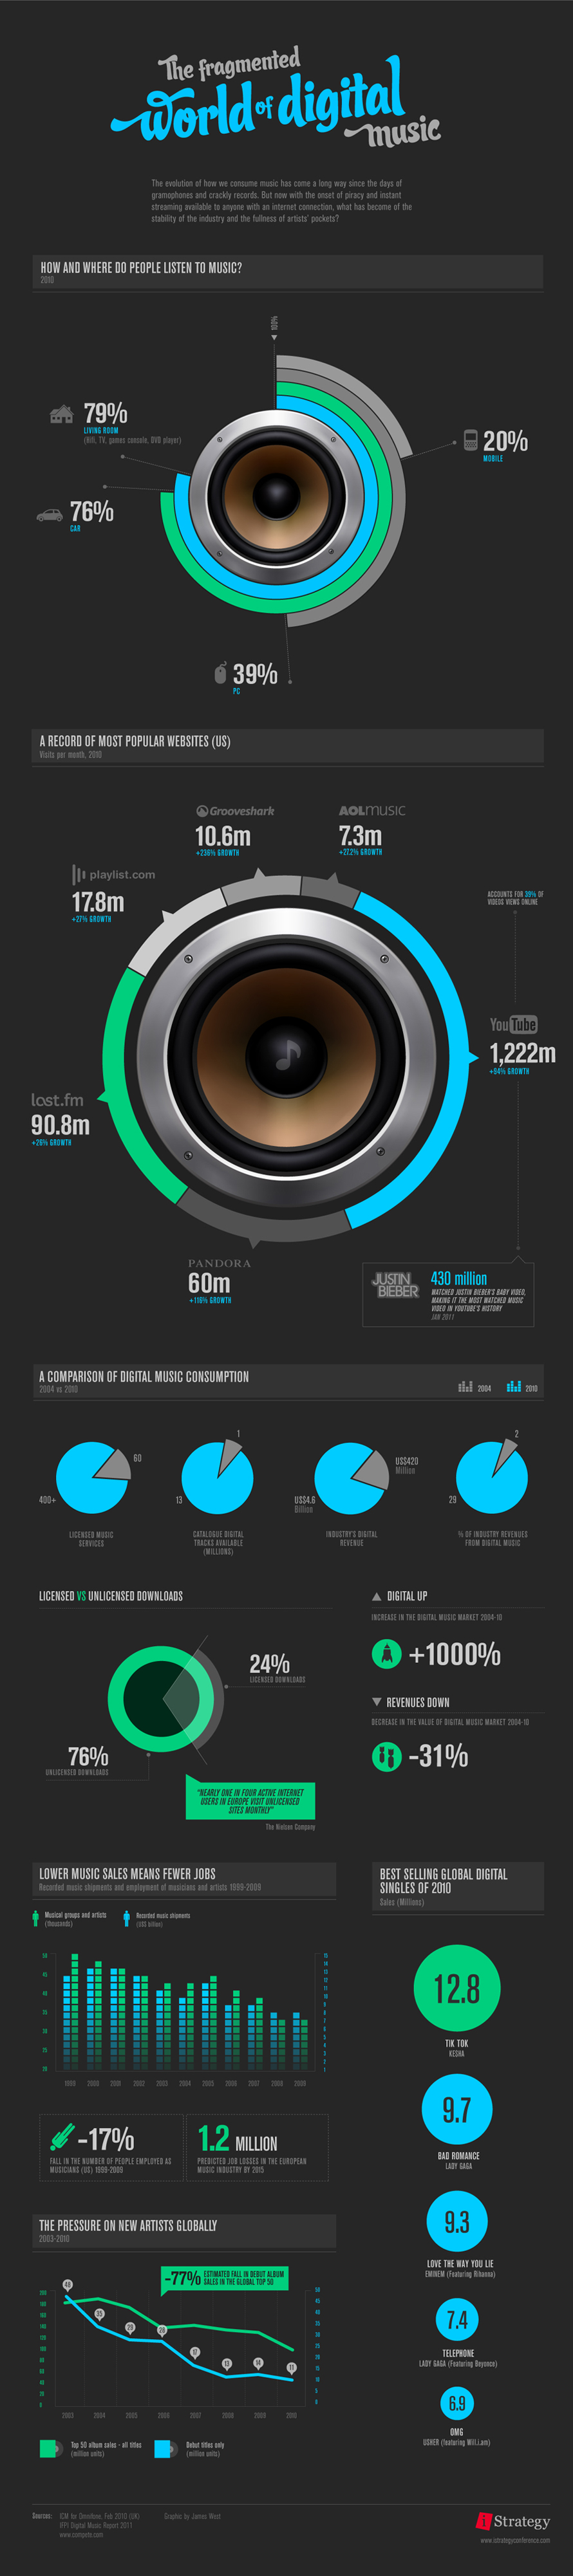 Fragment World of Digital Music - Infographic